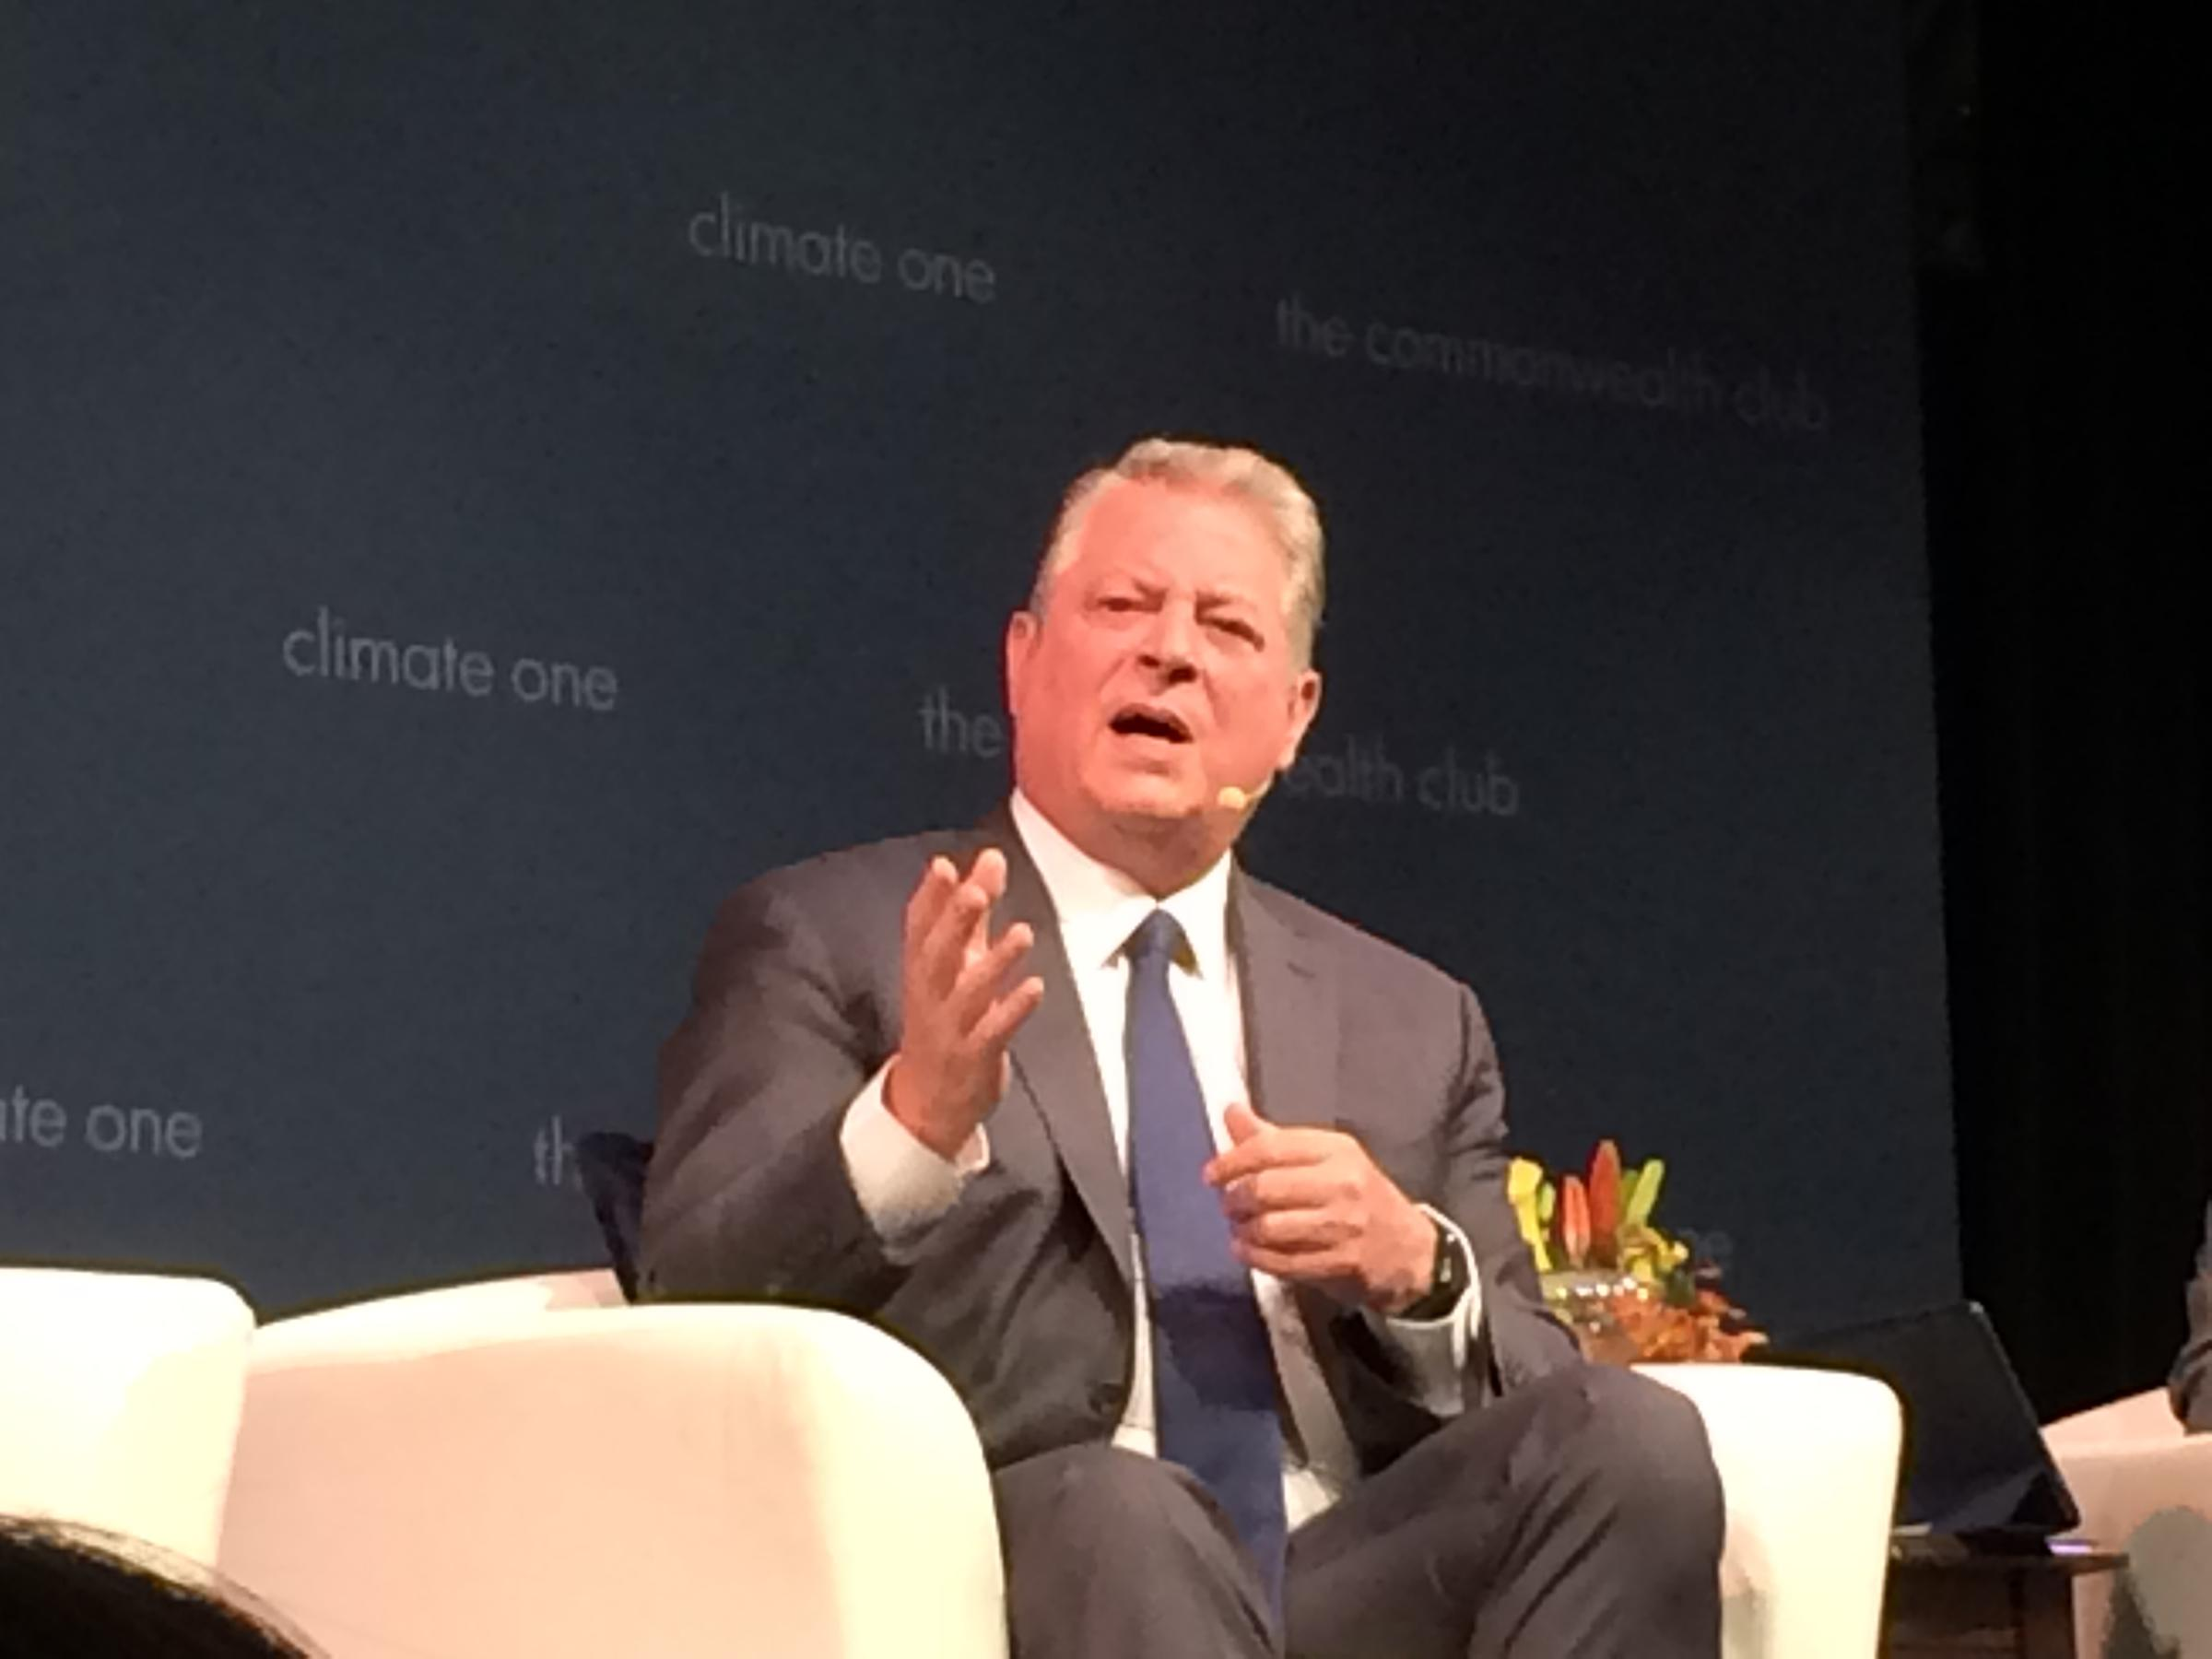 a summary of an inconvenient truth al gores documentary on climate change Oscars snub al gore's inconvenient truth sequel by rick moran is climate change losing its luster as an issue for the hollywood left the sequel to al gore's 2006 documentary an inconvenient truth released in 2017 and titled an inconvenient sequel.